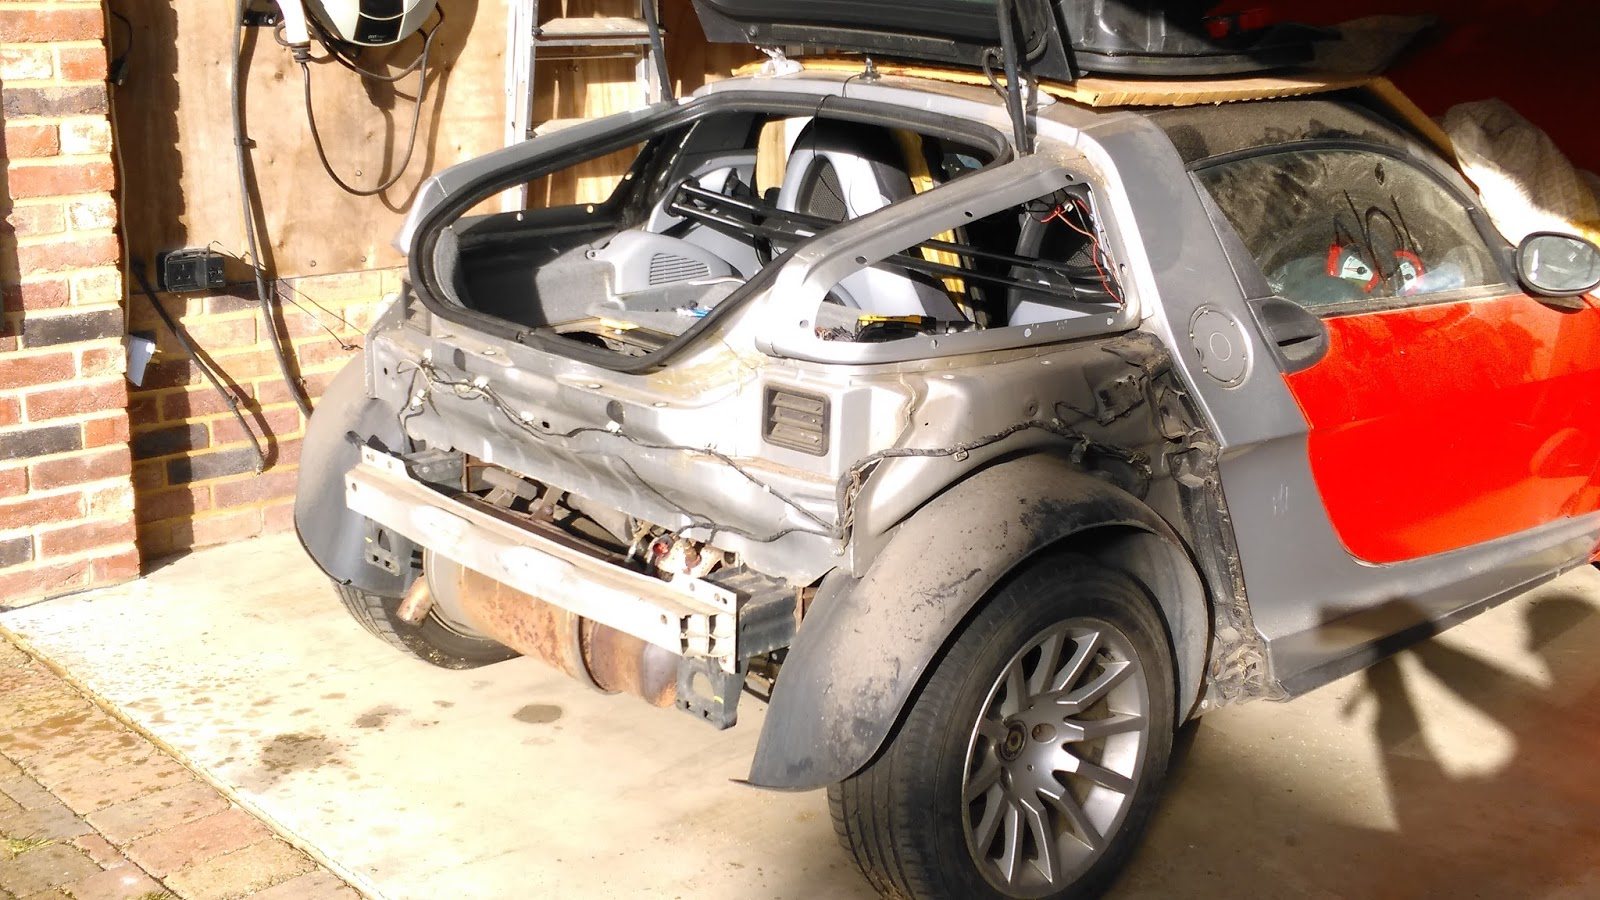 Smart Roadster - Conversion to electric car: The old sub-frame is ...